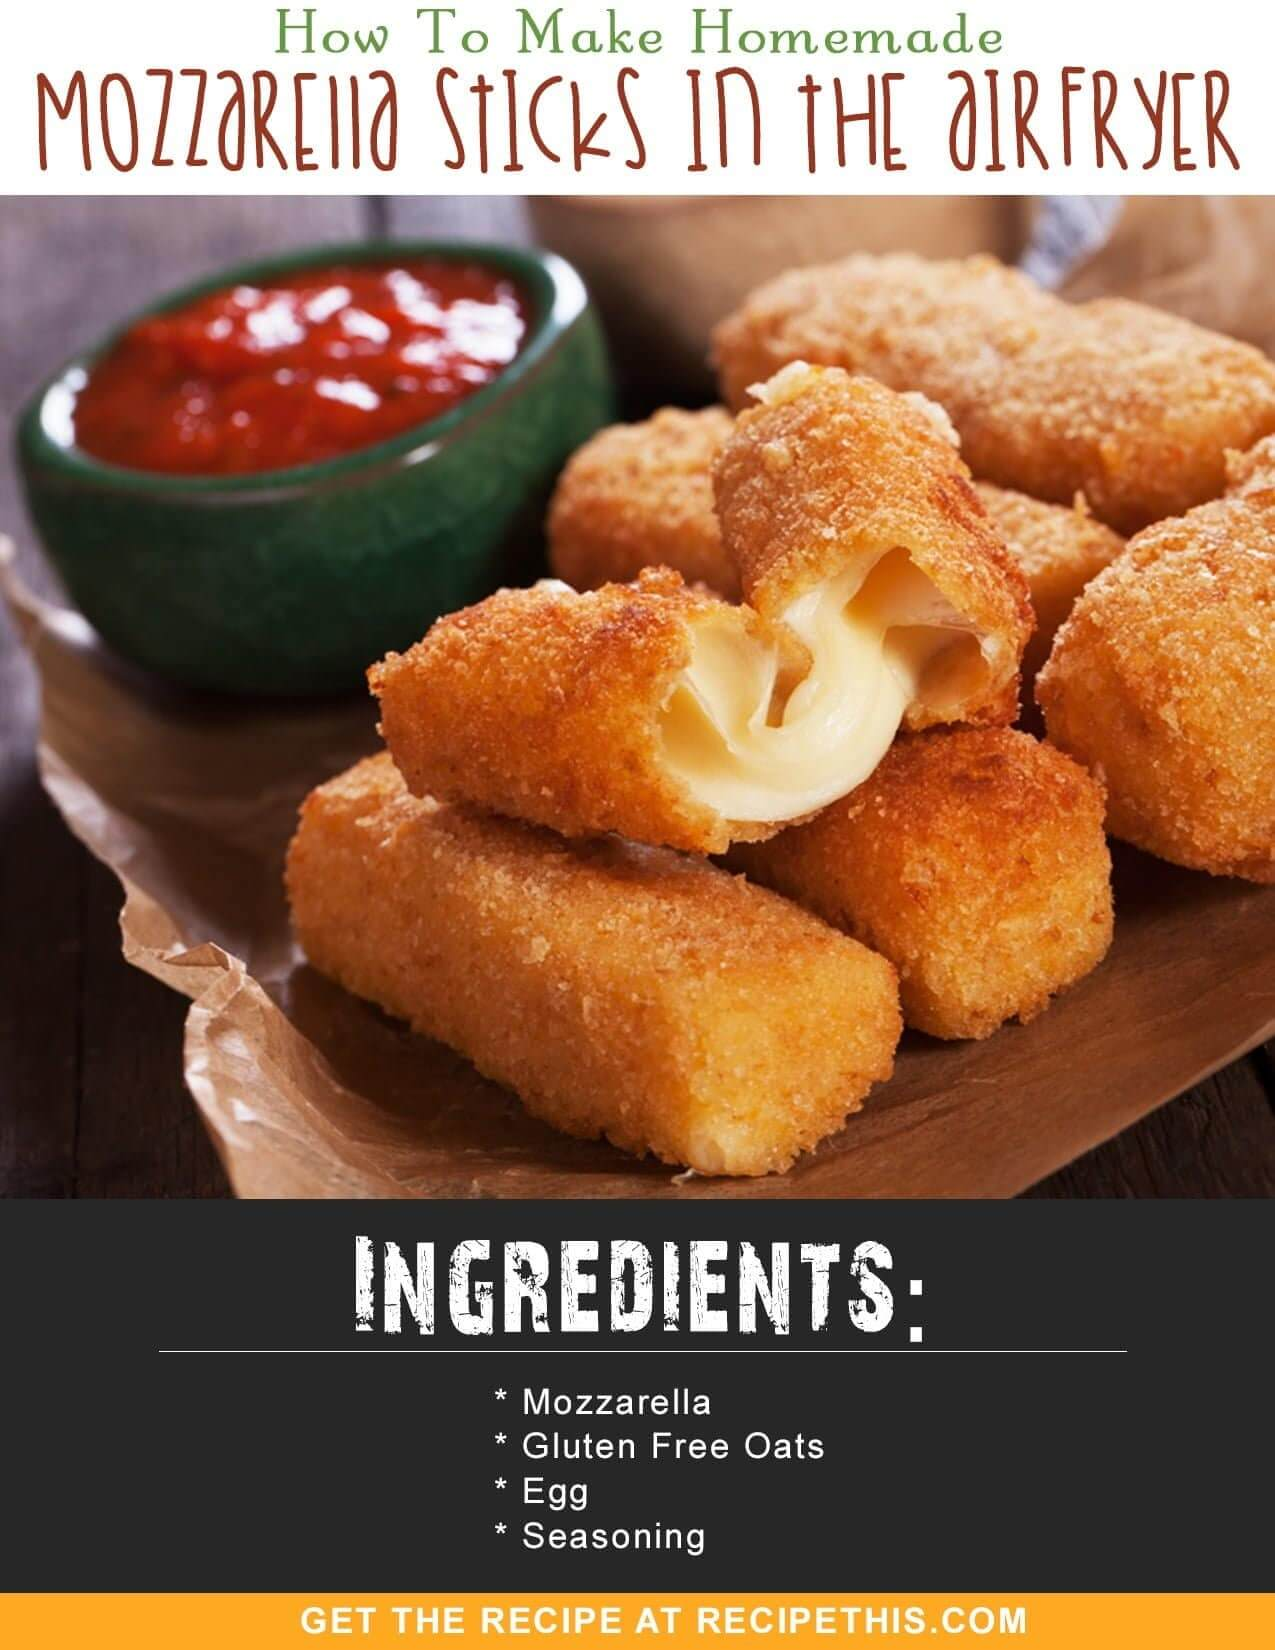 Airfryer Recipes | How To Make Homemade Mozzarella Sticks In The Airfryer Recipe from RecipeThis.com